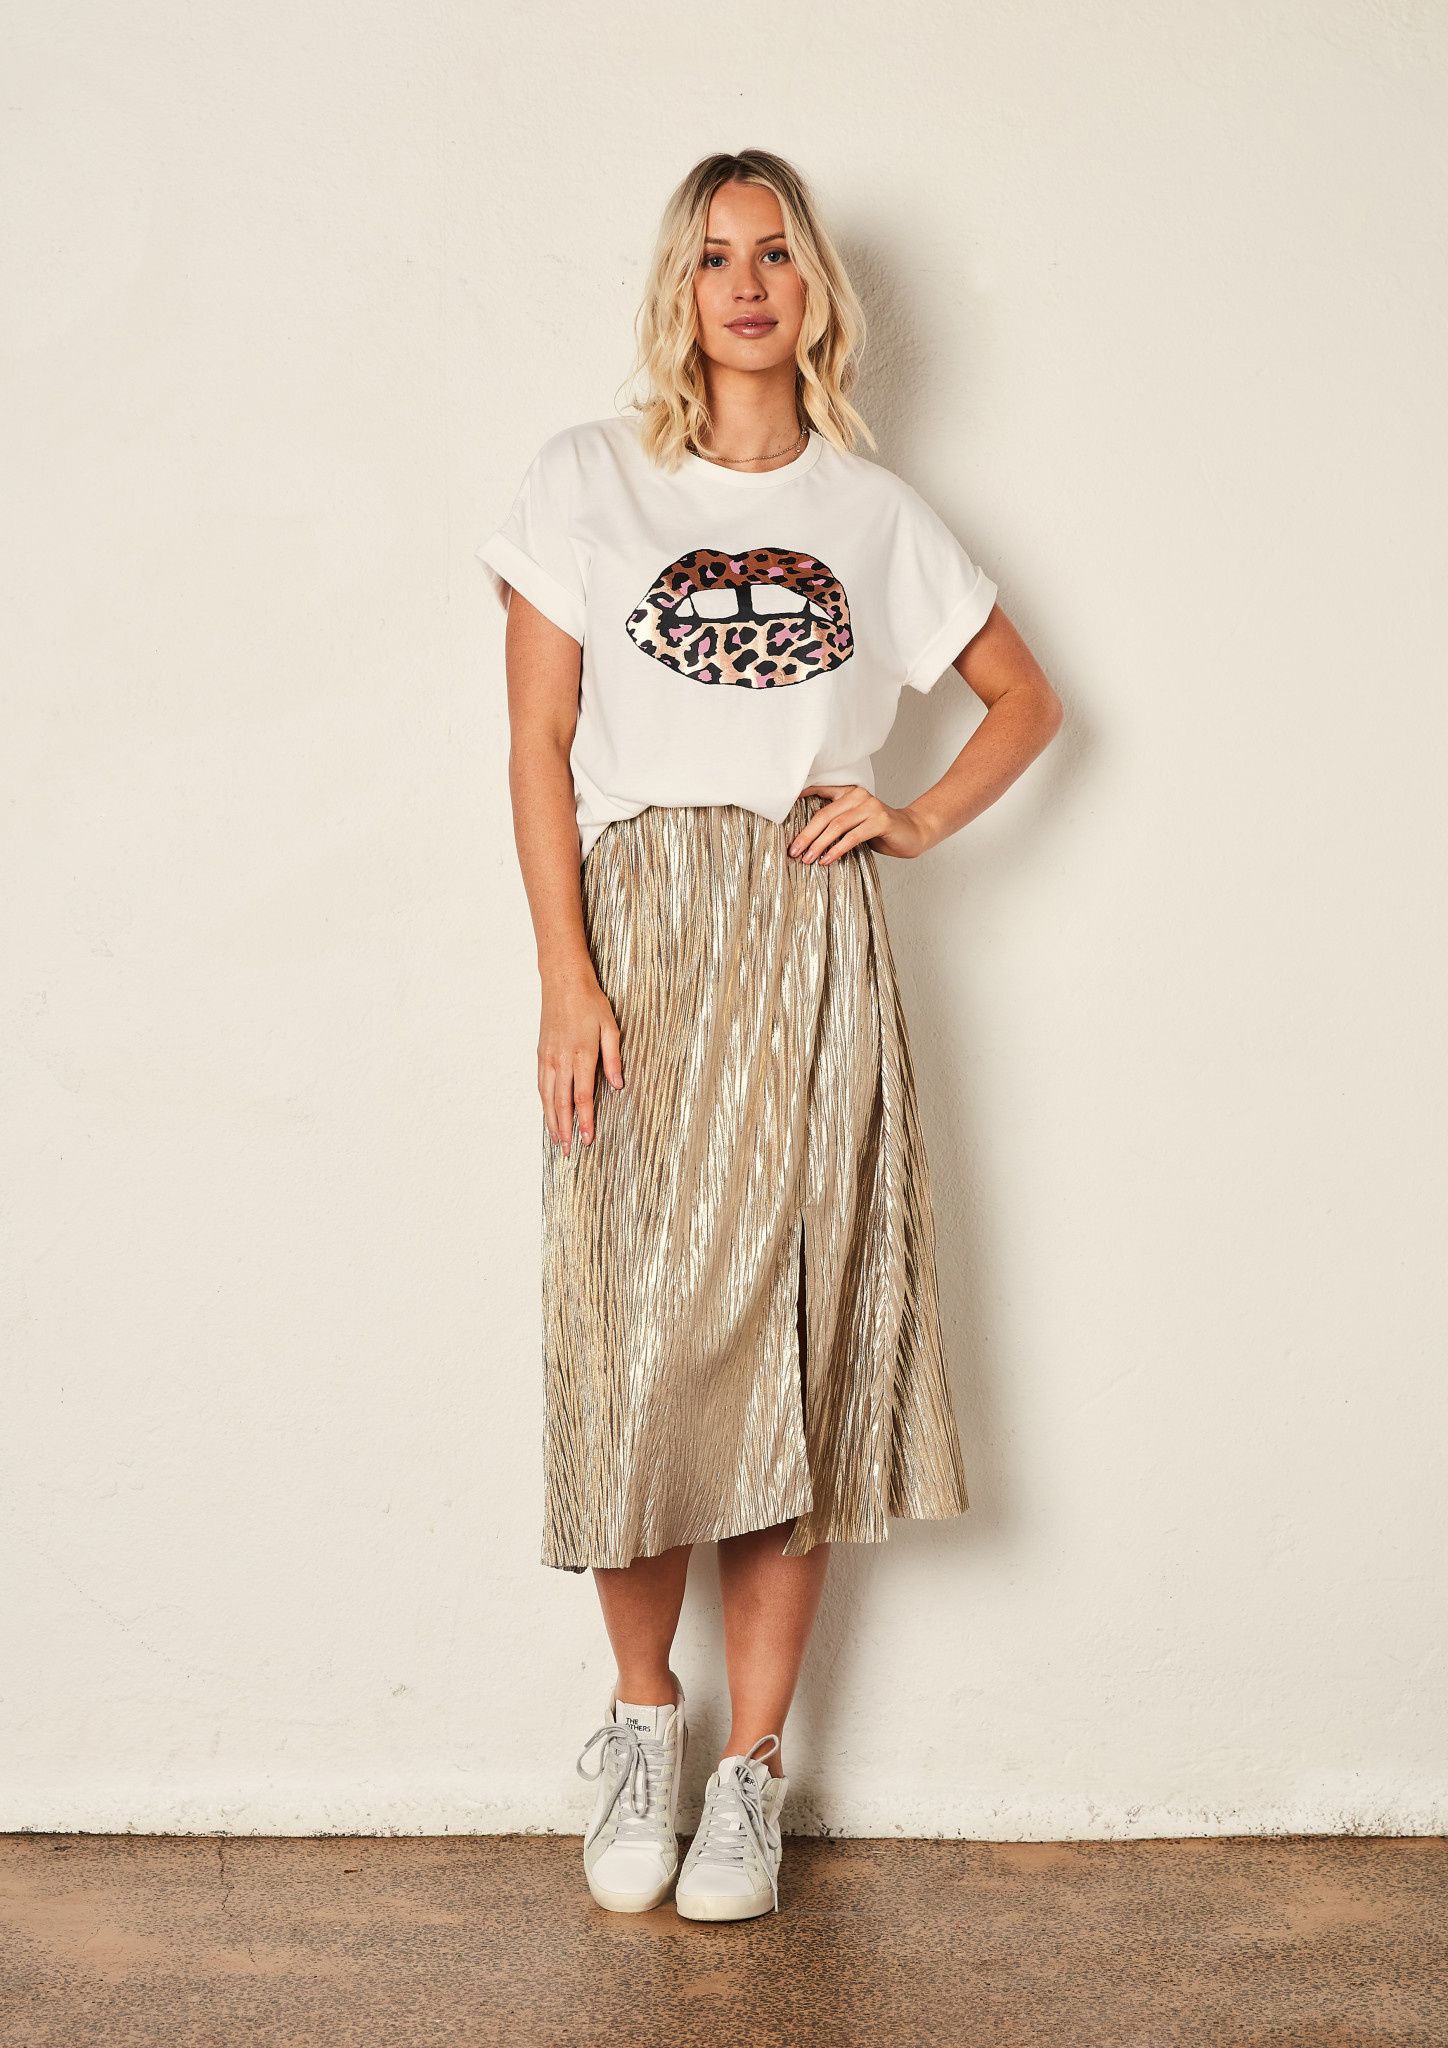 The Others The relaxed Tee White Leopard lips